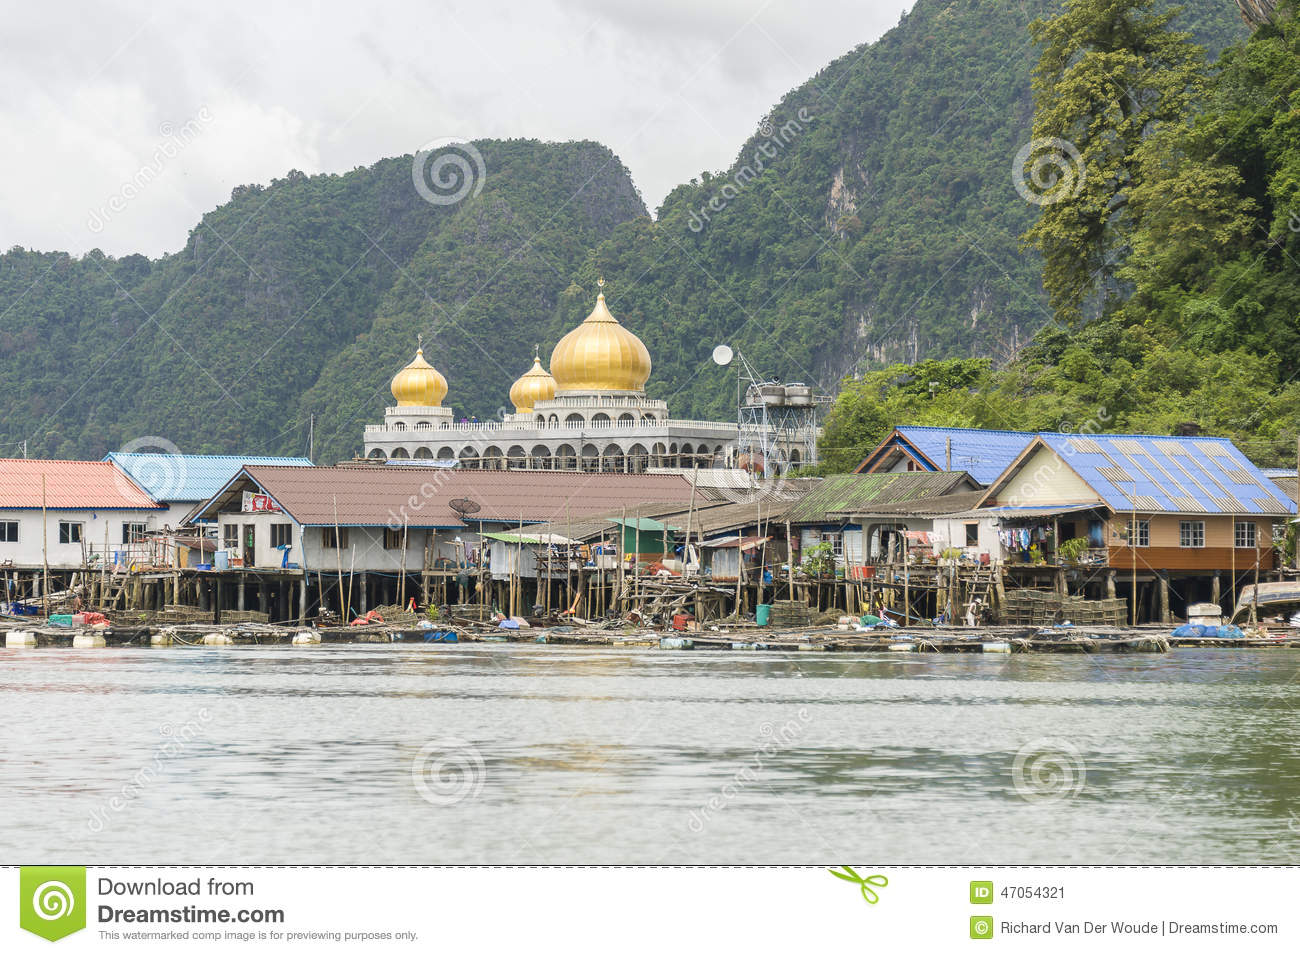 muslim singles in bay village The maluku islands sectarian conflict was a period of ethno  from a majority muslim village that had been offered  people across ambon bay to.